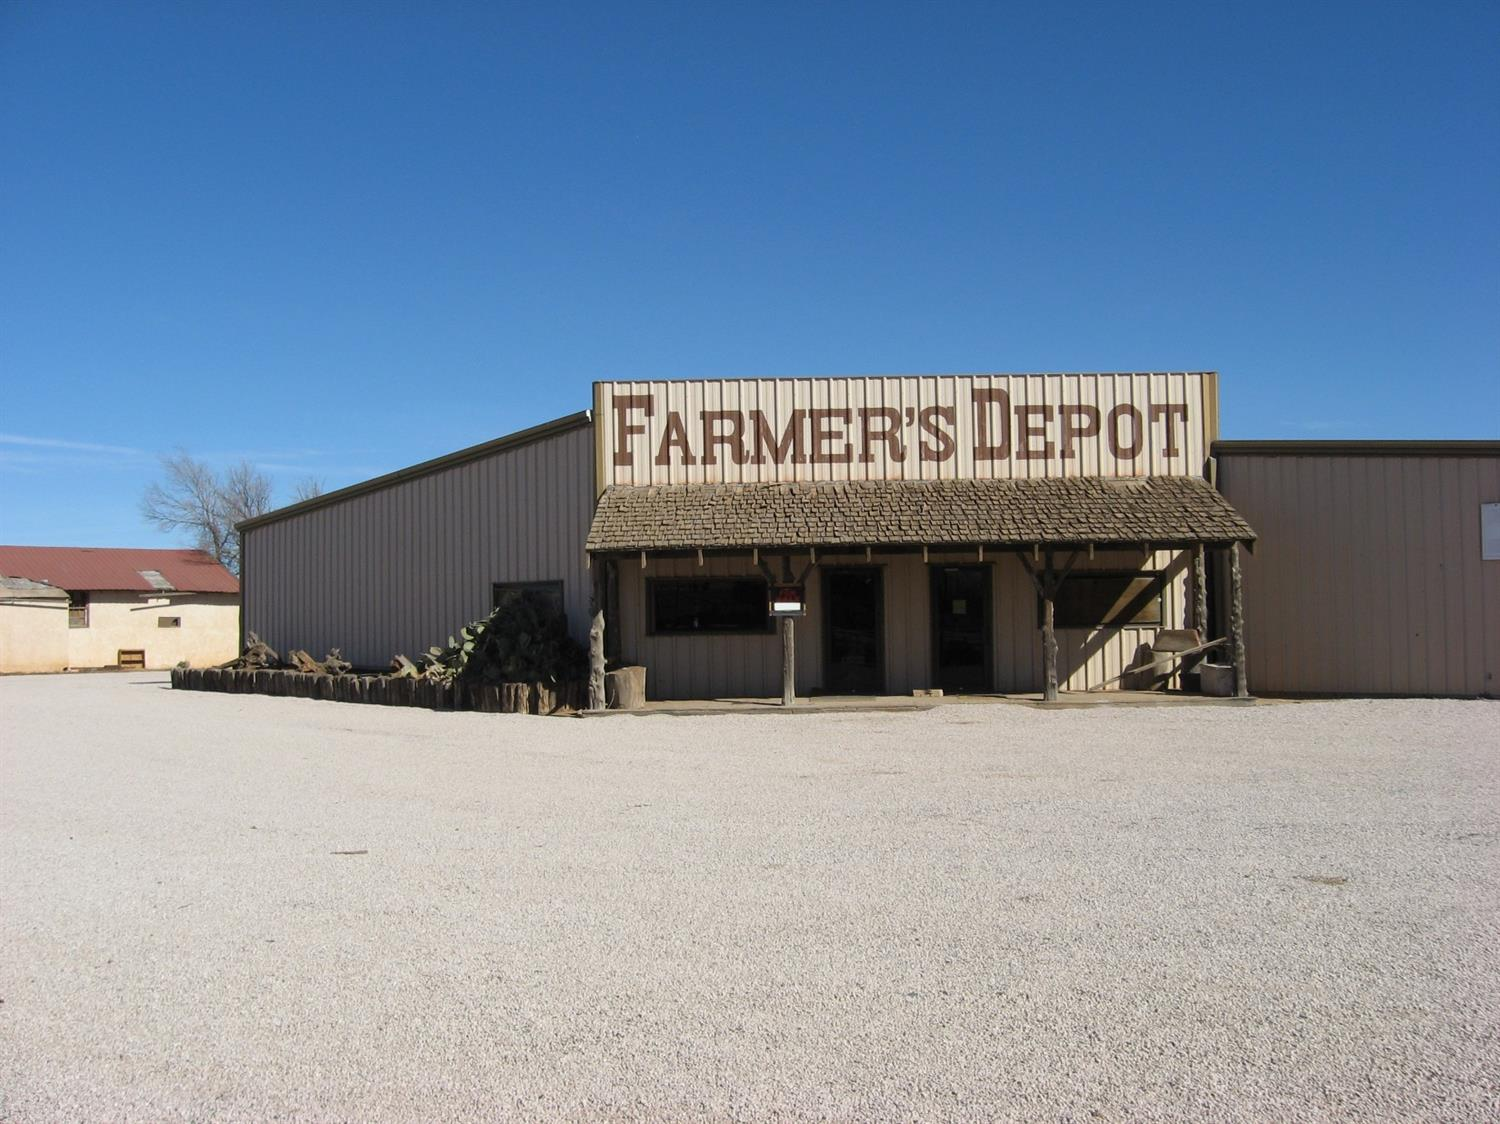 Farm Store for sale on 3 Acres at North University and FM 1294. operated as an area farm store for many years. Sale includes assorted supplies, antiques, and shelving. All to be sold as is Restaurant area.  Farm Store on 3 Acres   Inground Dock   Restaurant Area   assorted Supplies and Antiques   Needs HVAC System.